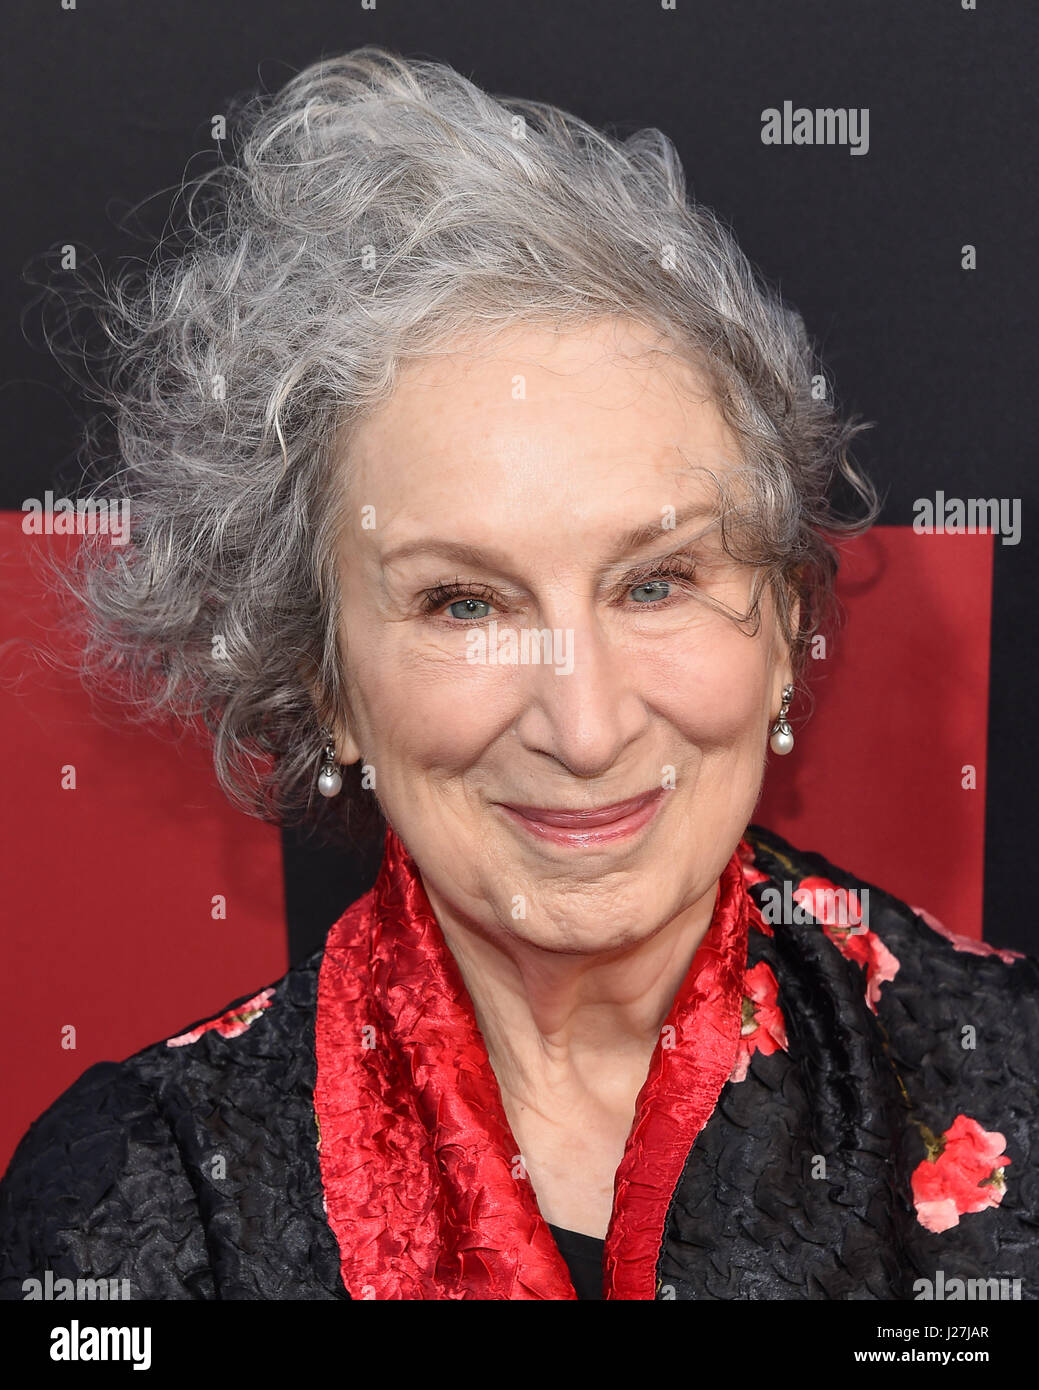 Margaret atwood stock photos margaret atwood stock for The atwood